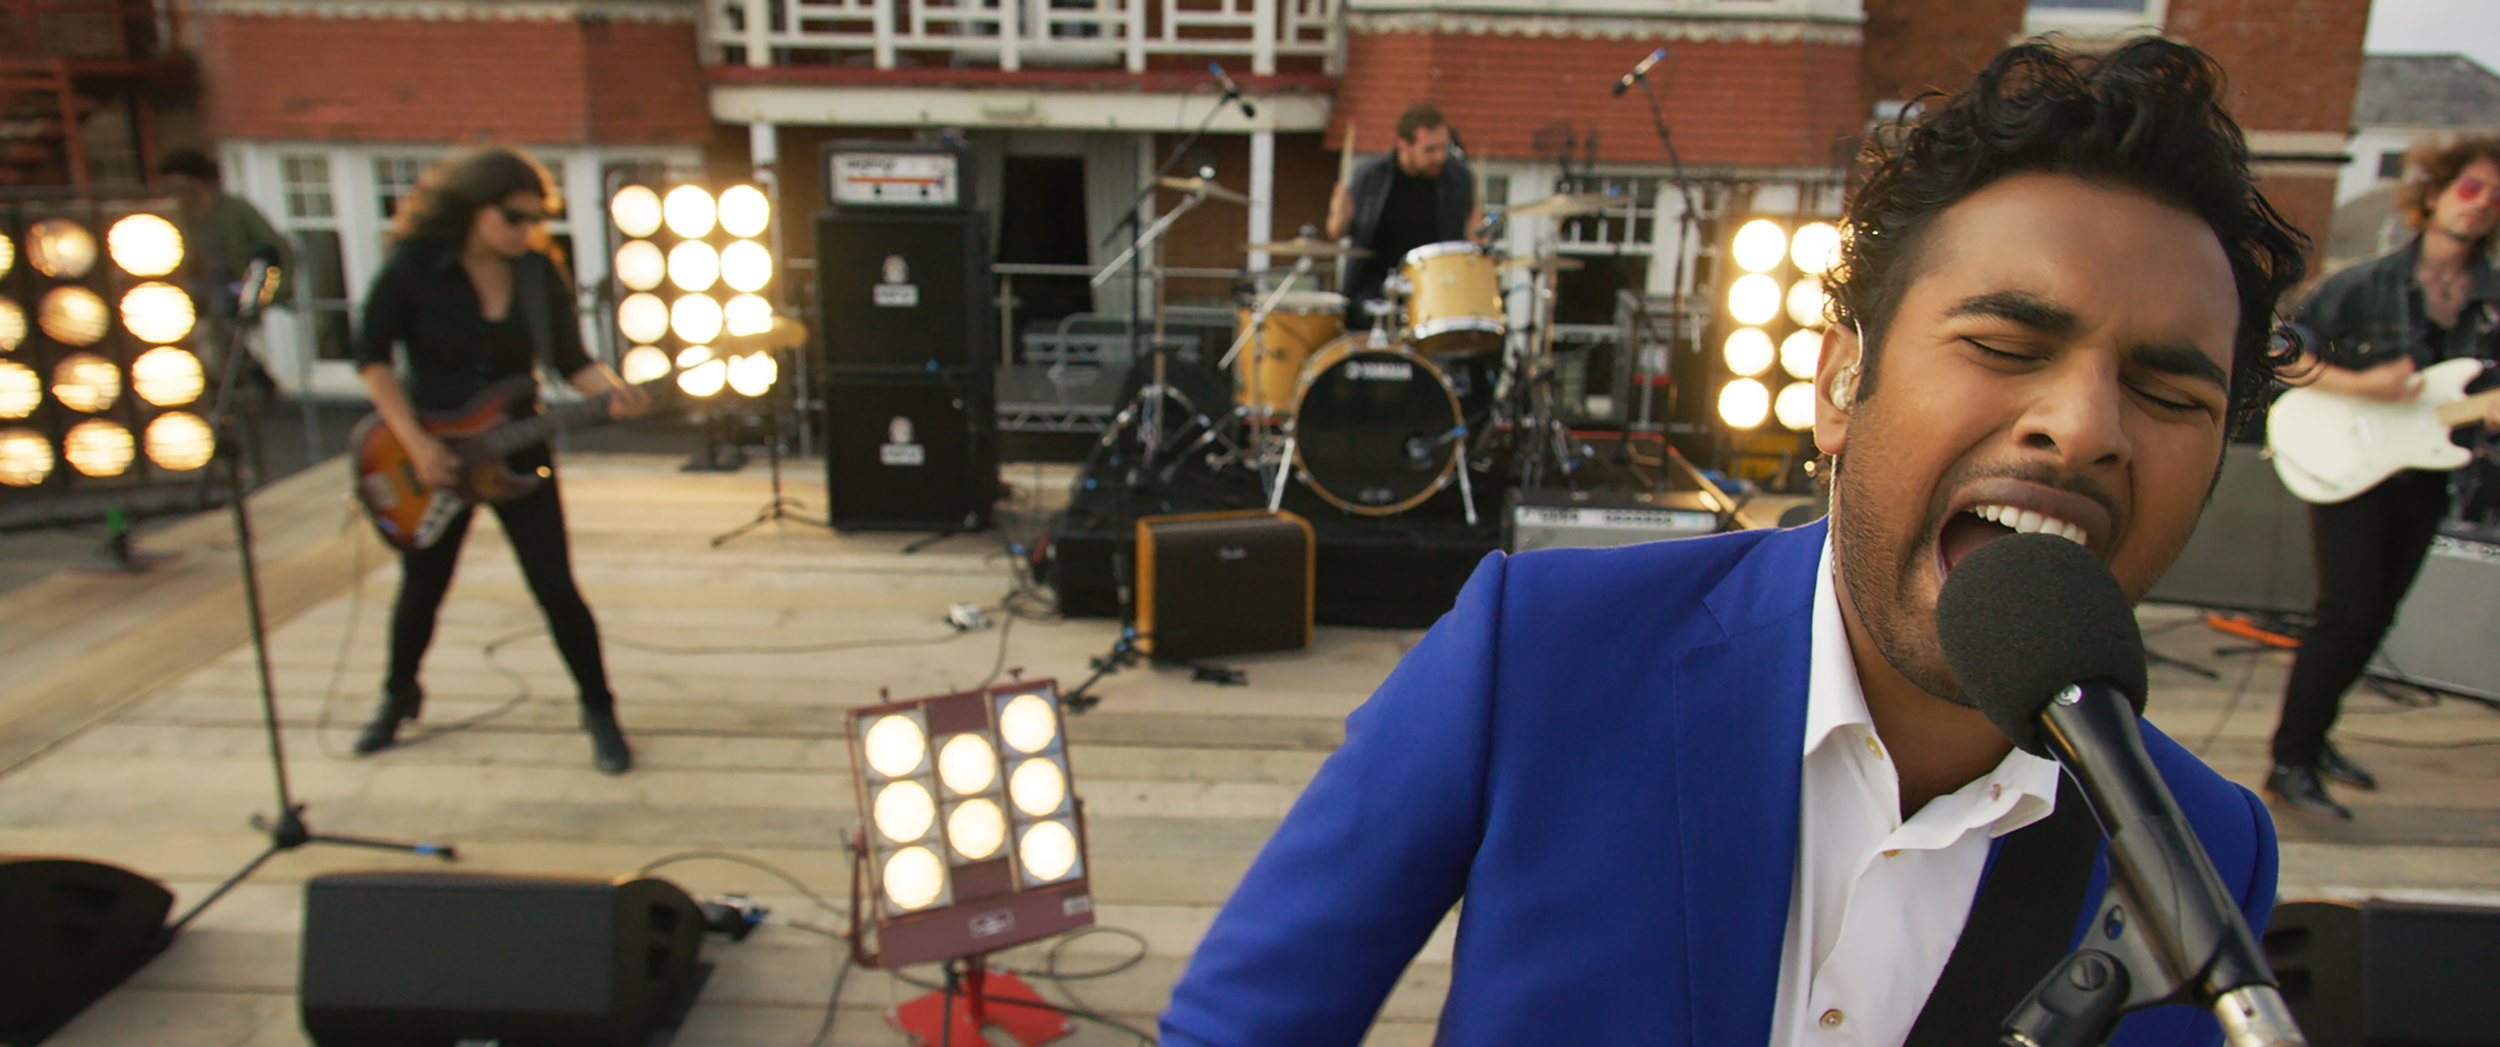 """Jack Malik (Himesh Patel, right) performs a rooftop concert of Beatles songs, in a scene from the romantic comedy """"Yesterday."""" (Photo courtesy of Universal Pictures.)"""